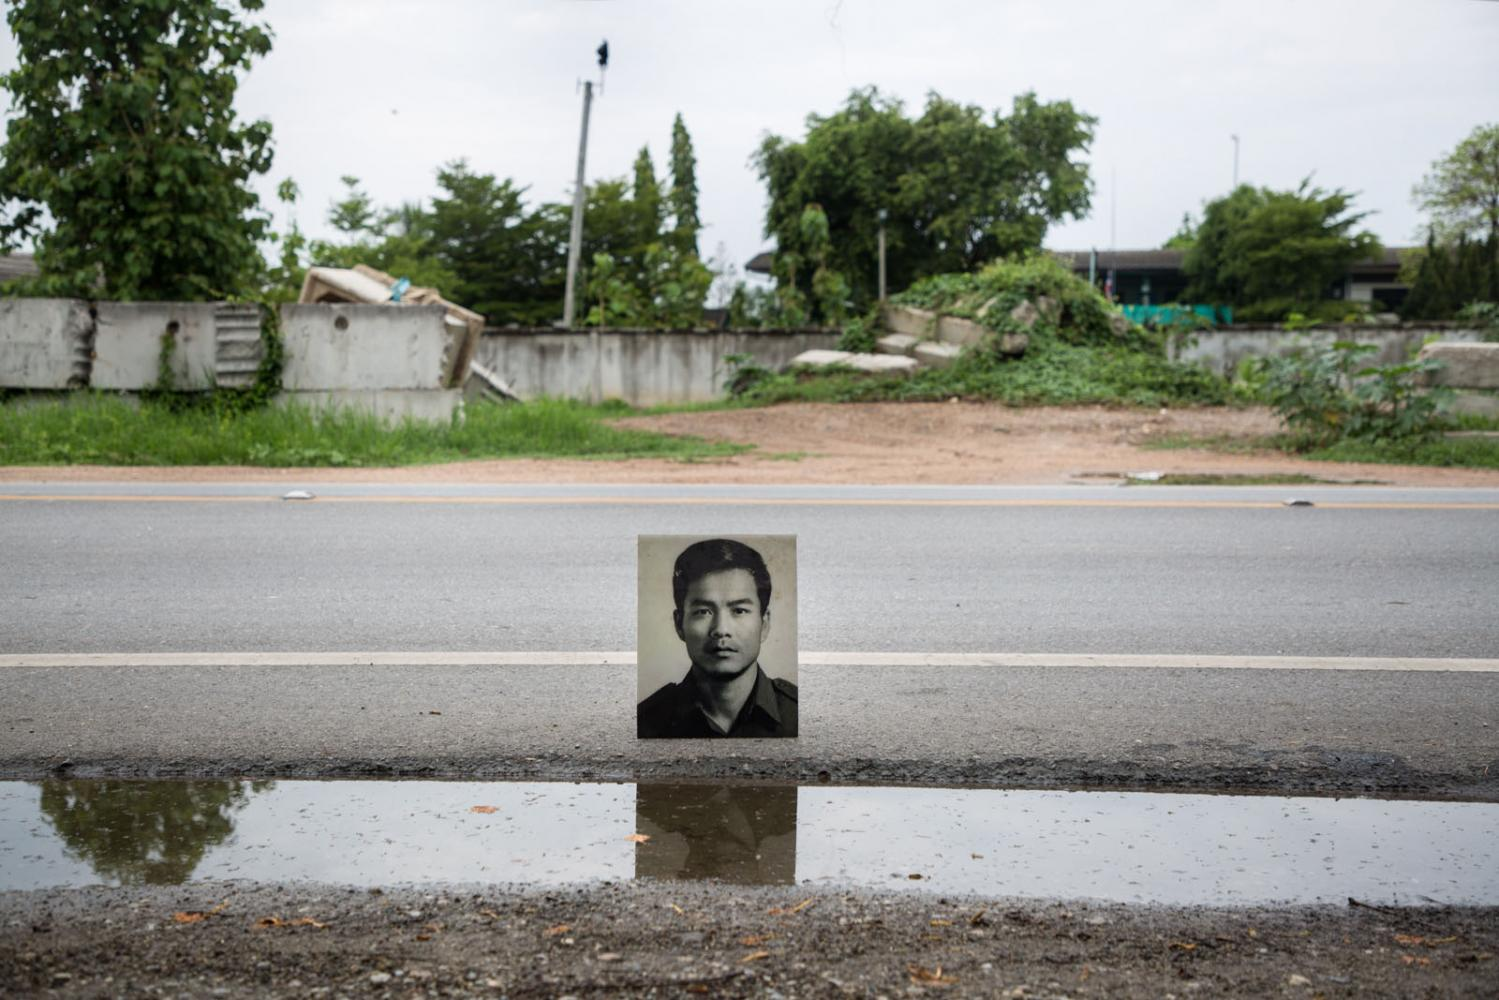 Prasert Chomamarit, Chairperson of Ban Fon Moo Peasant Federation in Nong Kwai District, Hang Dong District, Chiang Mai, was shot dead on 17 April 1975. Prasert was a prominent member of a local group which had been campaigning on rice paddy rental fee and exposing corruption by local government officials.